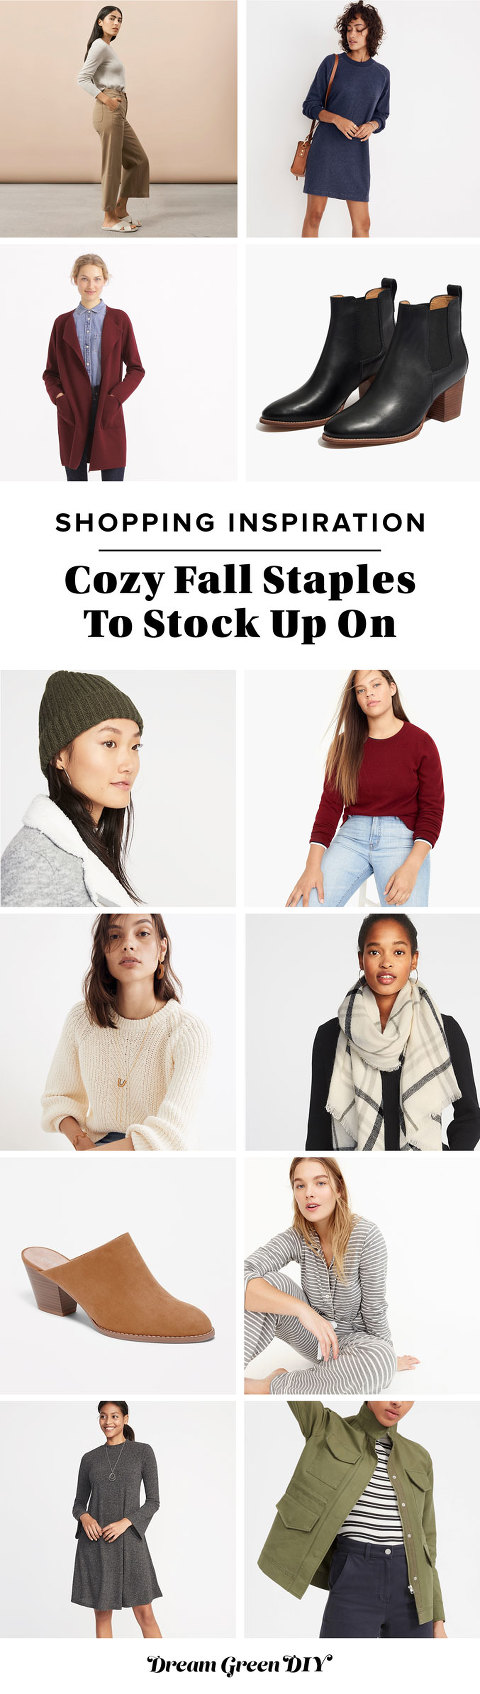 Cozy Fall Staples To Stock Up On